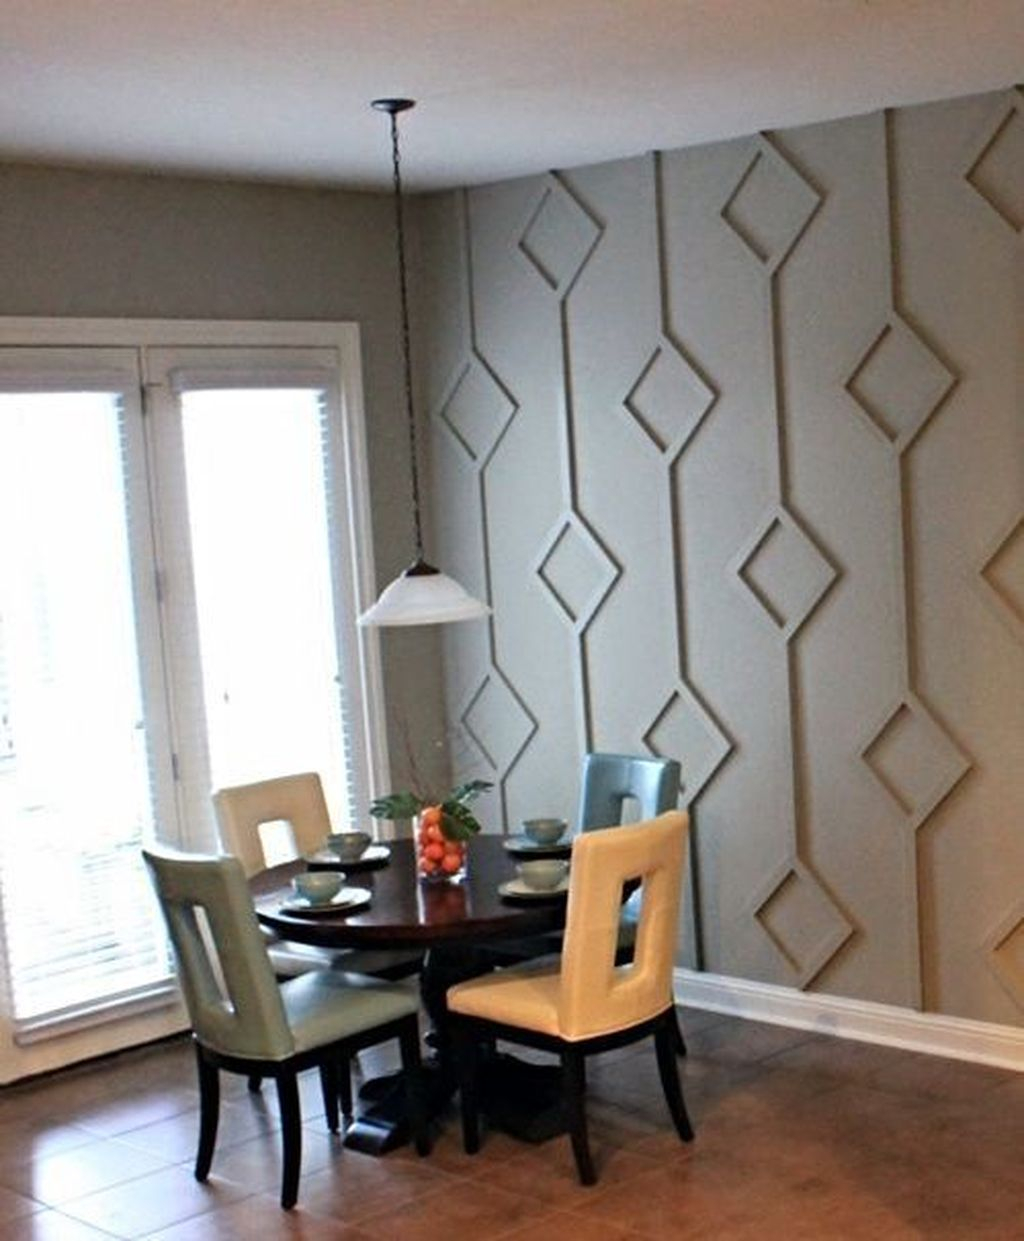 Awesome Wall Paint Color Combination Design Ideas For The Beauty Of Your Home Interior34